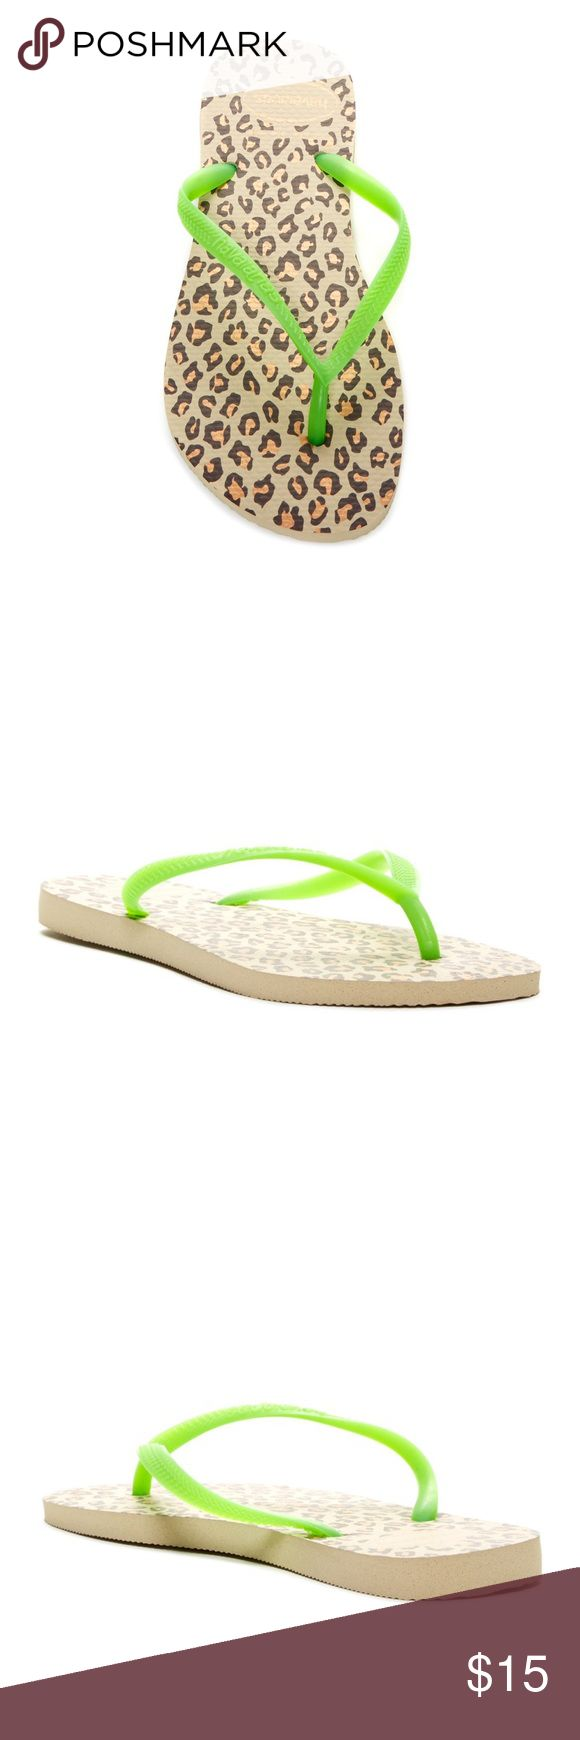 Slim Animal Flip Flop Brand new never worn. Sizing: If between sizes, order next size up. Reference size chart for European conversion: 39-40 = 9/10 US  - Thong toe - Slip-on - Leopard print foam footbed - Imported Materials: Rubber upper and sole Havaianas Shoes Sandals